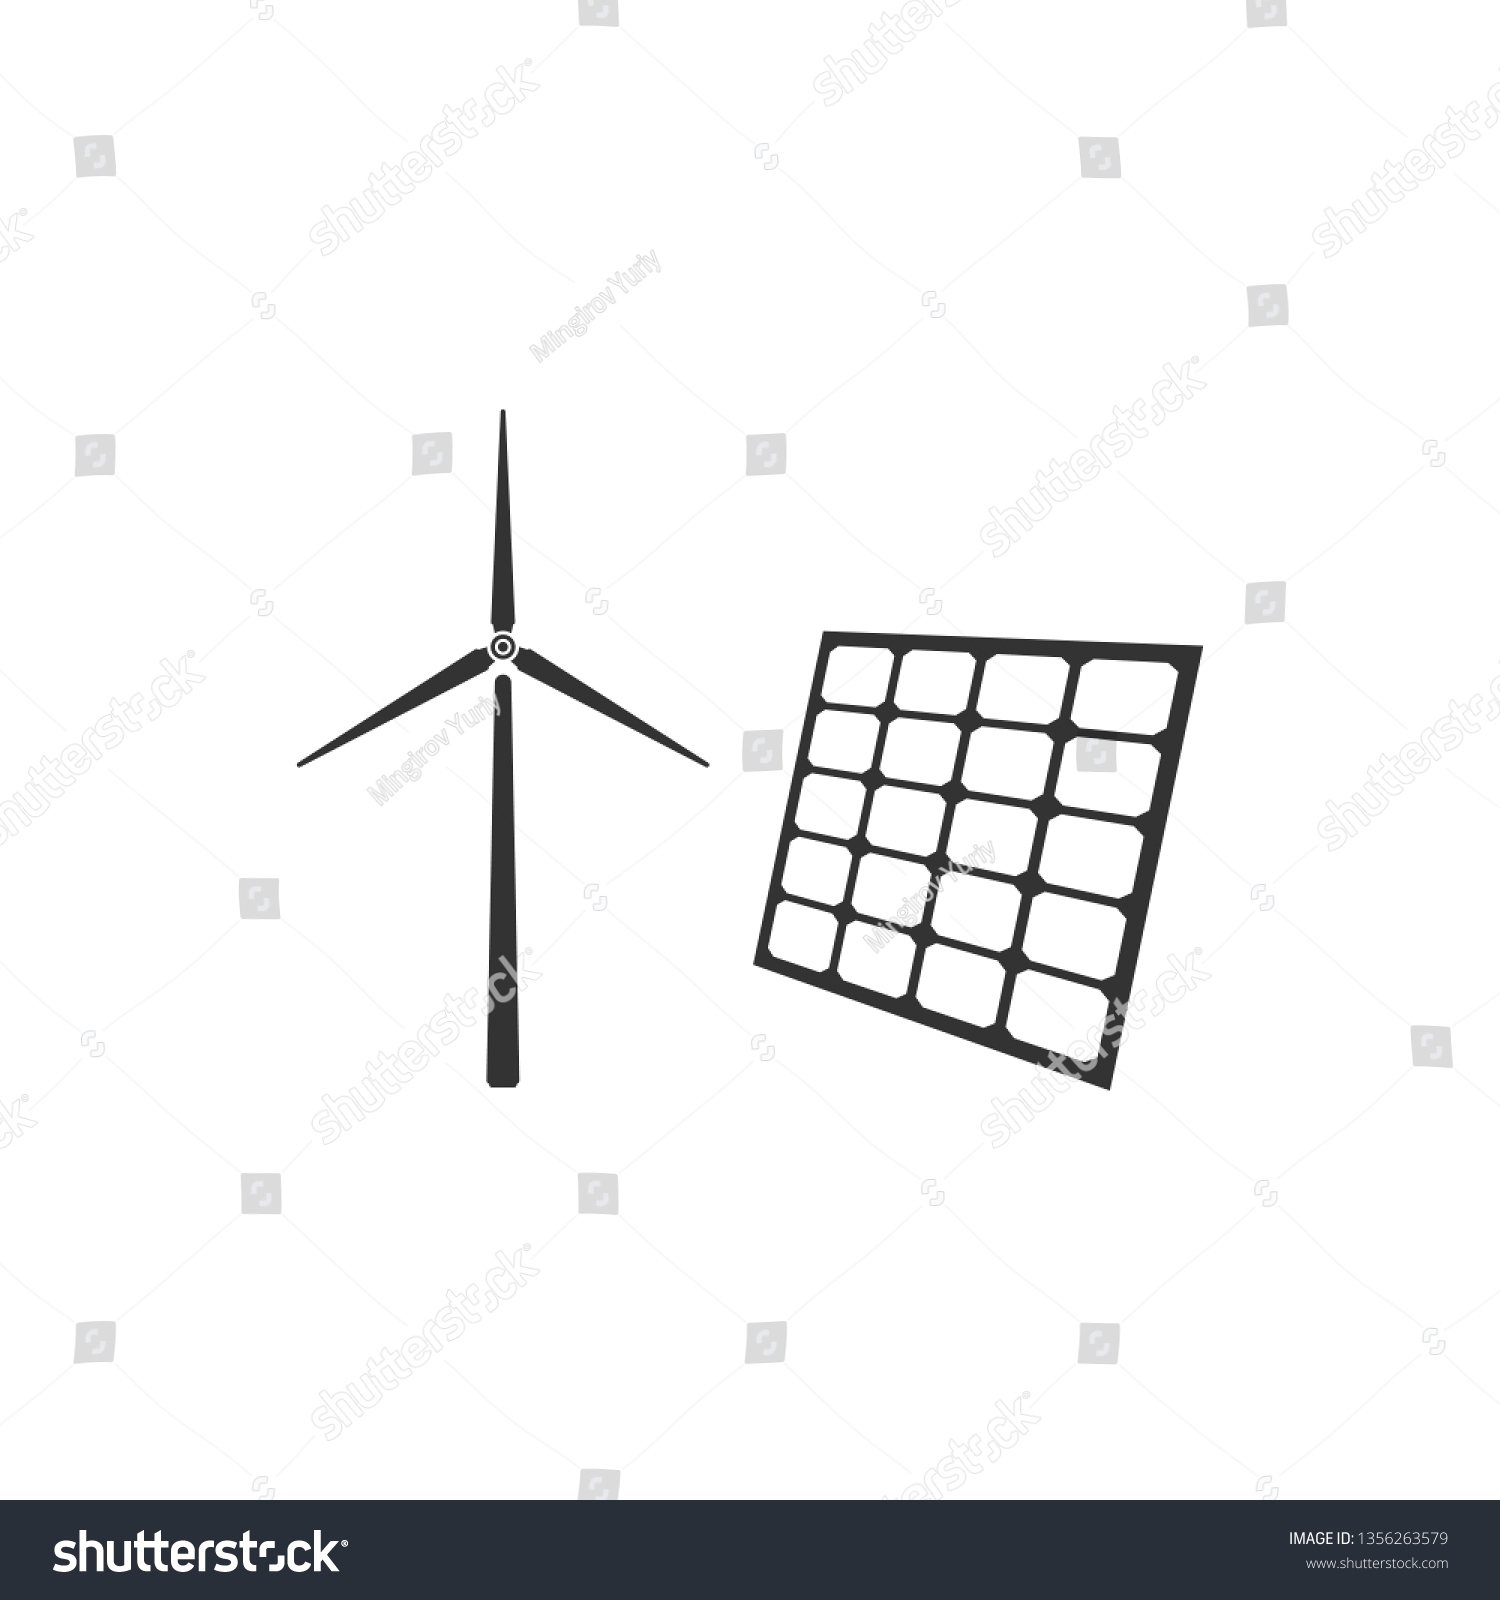 hight resolution of wind mill turbines generating electricity and solar panel icon isolated energy alternative concept of